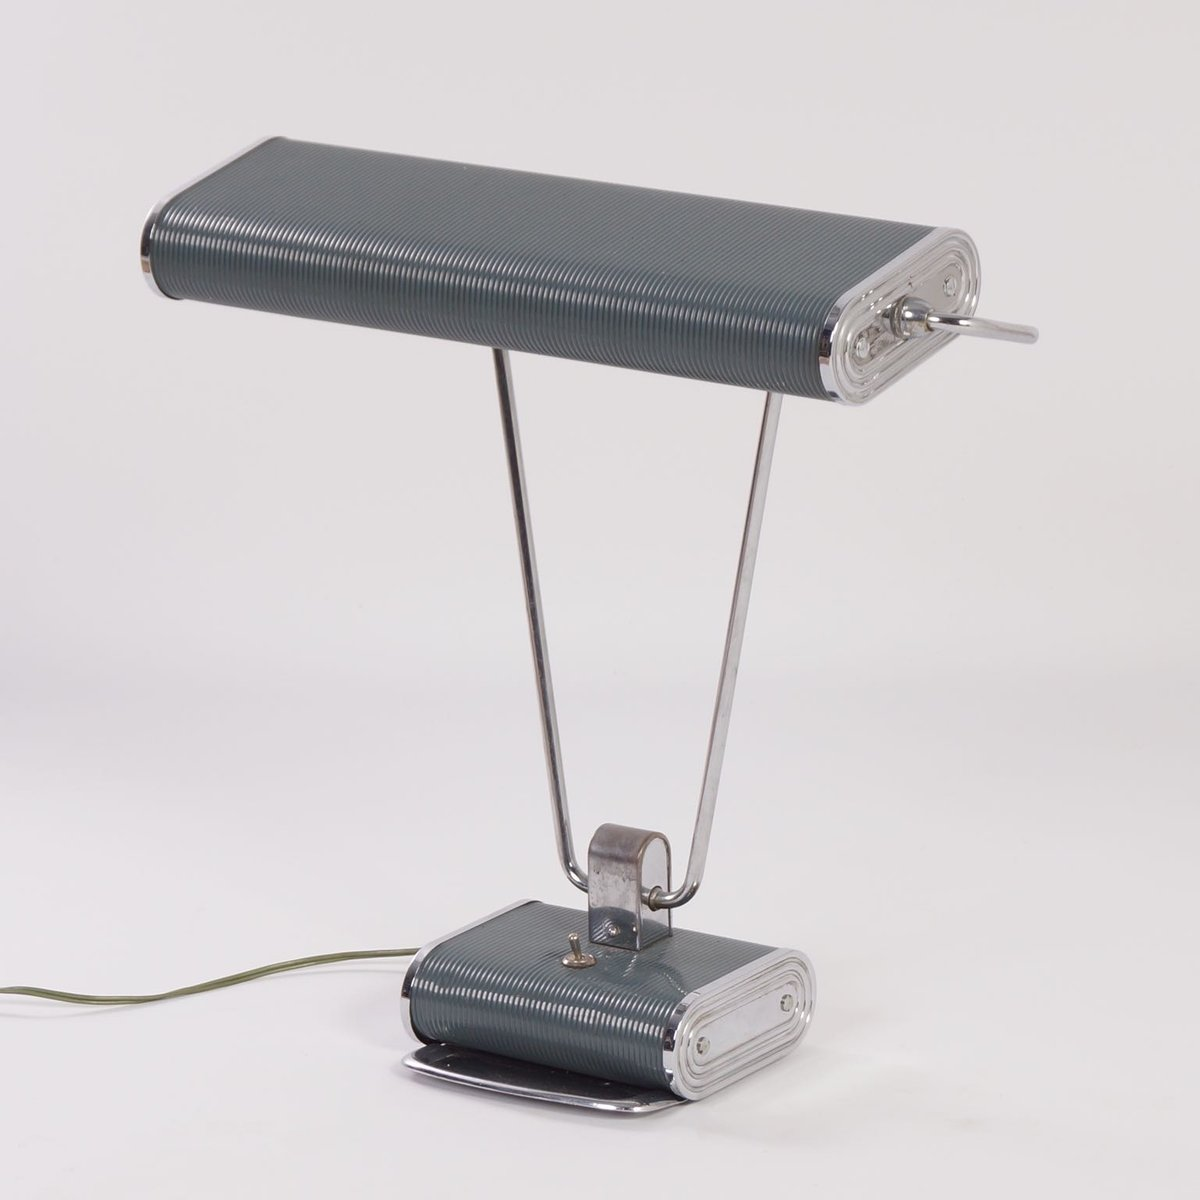 Art Deco Desk Lamp by Eileen Gray for Jumo 1930s for sale at Pamono